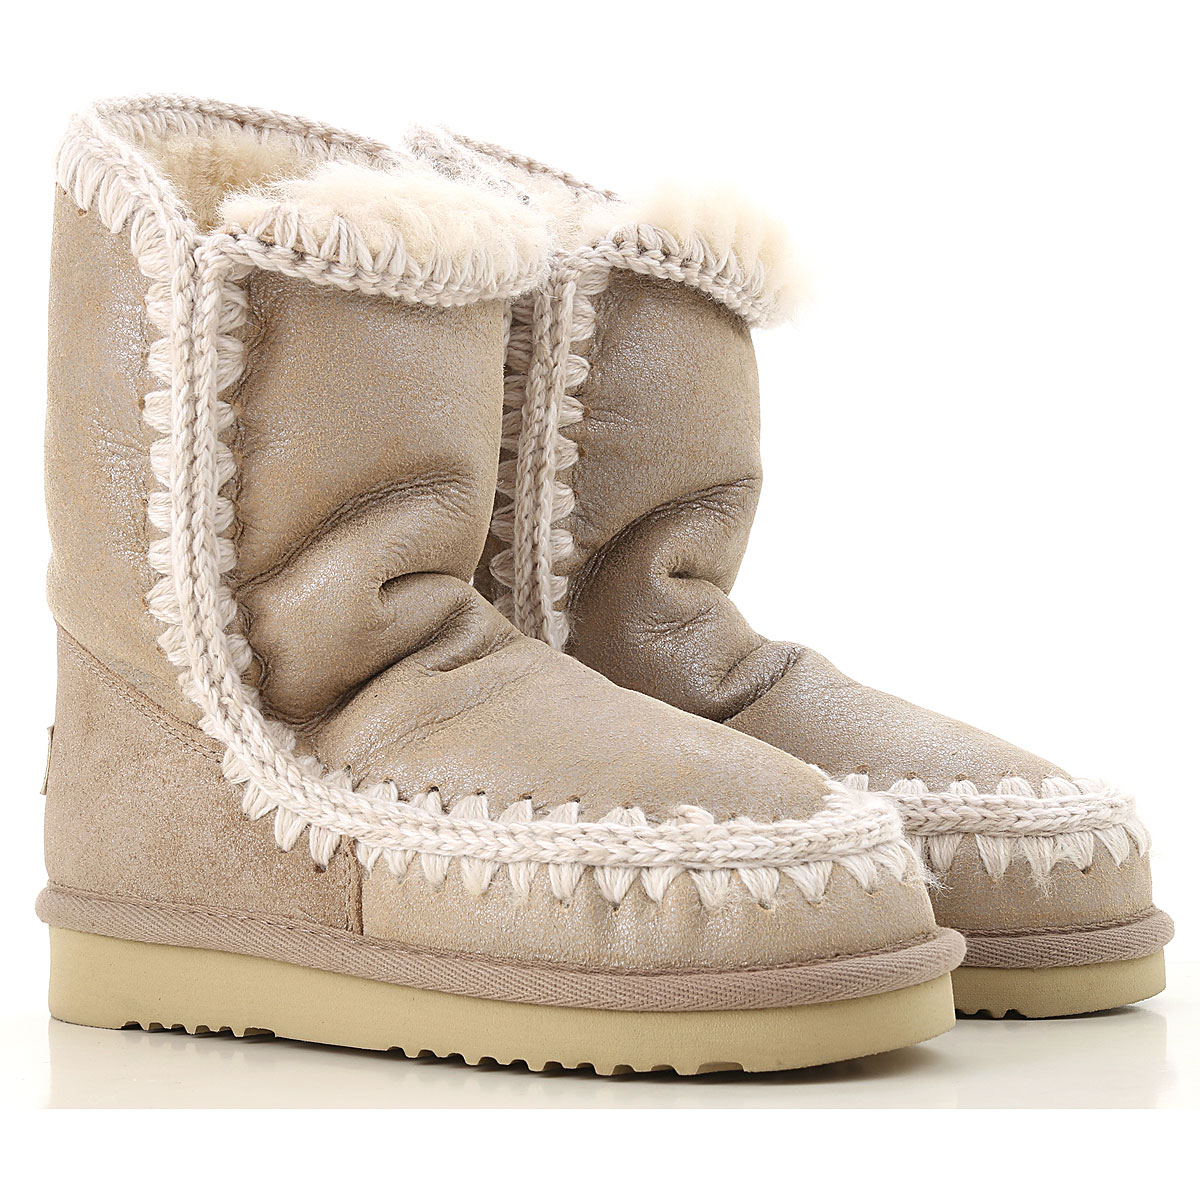 Image of Mou Boots for Women, Booties, Sand, Leather, 2017, EUR 36 - UK 3 - USA 5.5 EUR 37 - UK 4 - USA 6.5 EUR 38 - UK 5 - USA 7.5 EUR 39 - UK 6 - USA 8.5 EUR 40 - UK 7 - USA 9.5